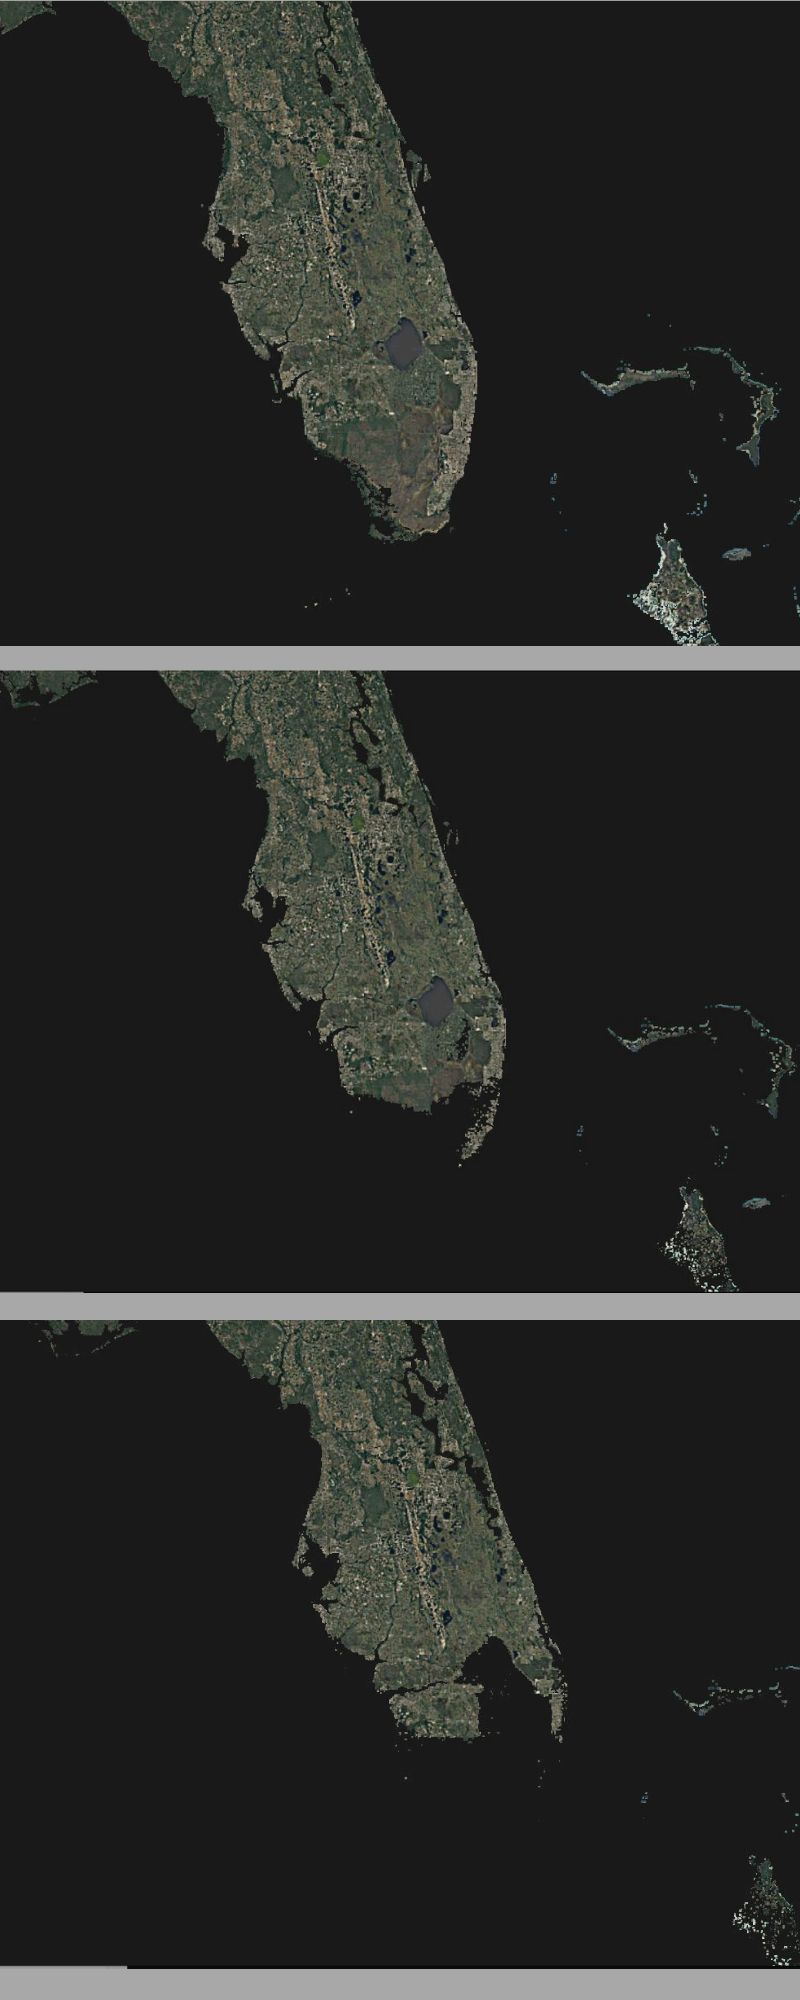 Time-lapse graphic of Florida going under water due to sea rise caused by climate change.